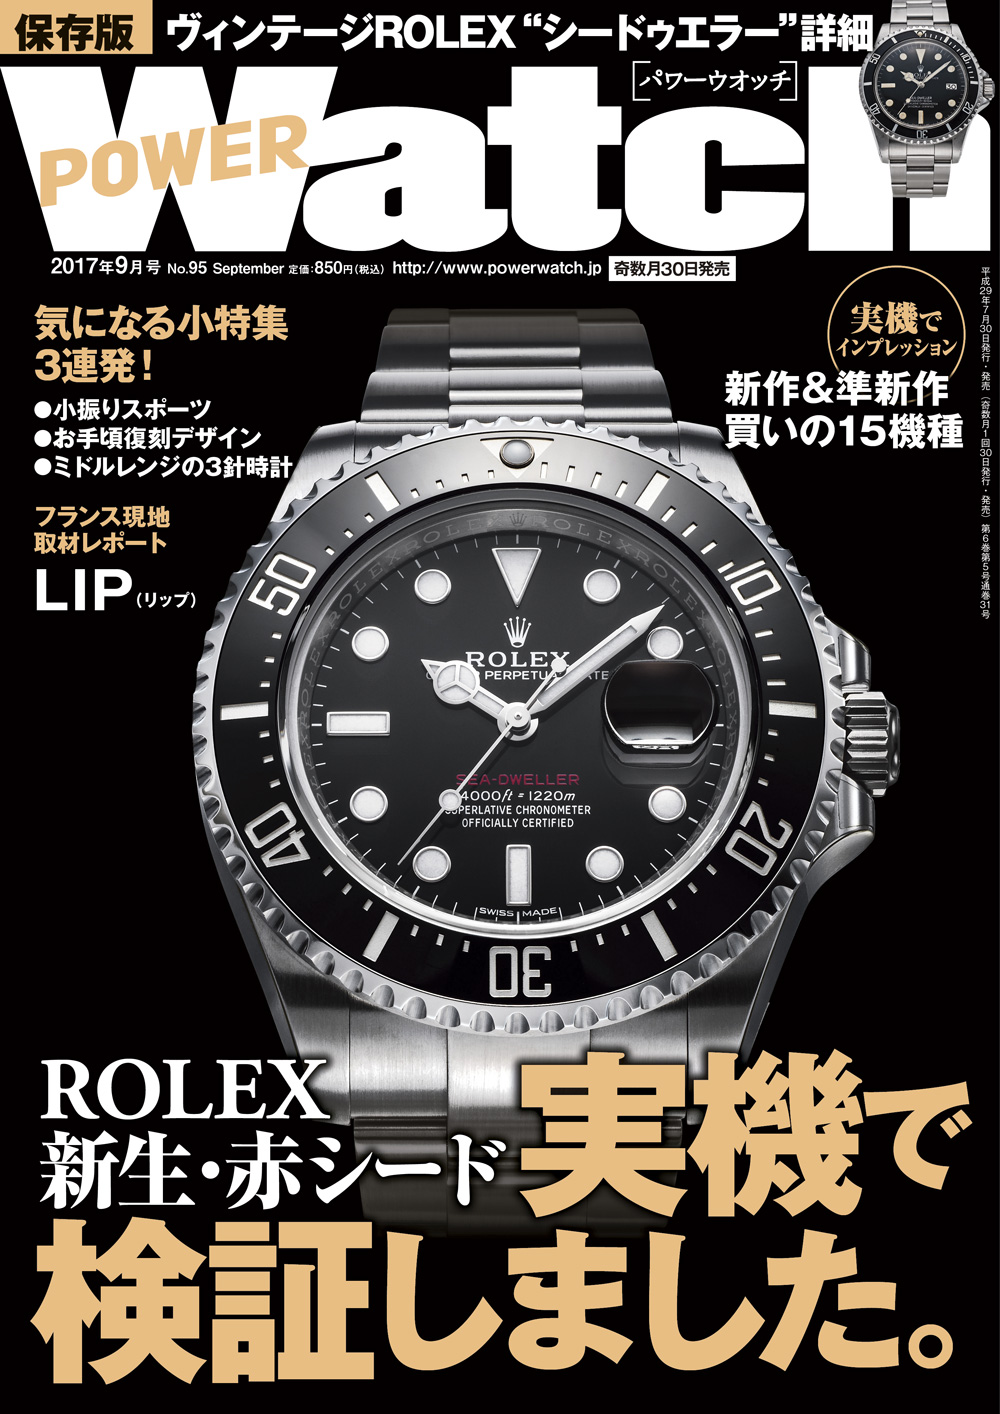 C's-Factory|電子書籍|POWER Watch No.95